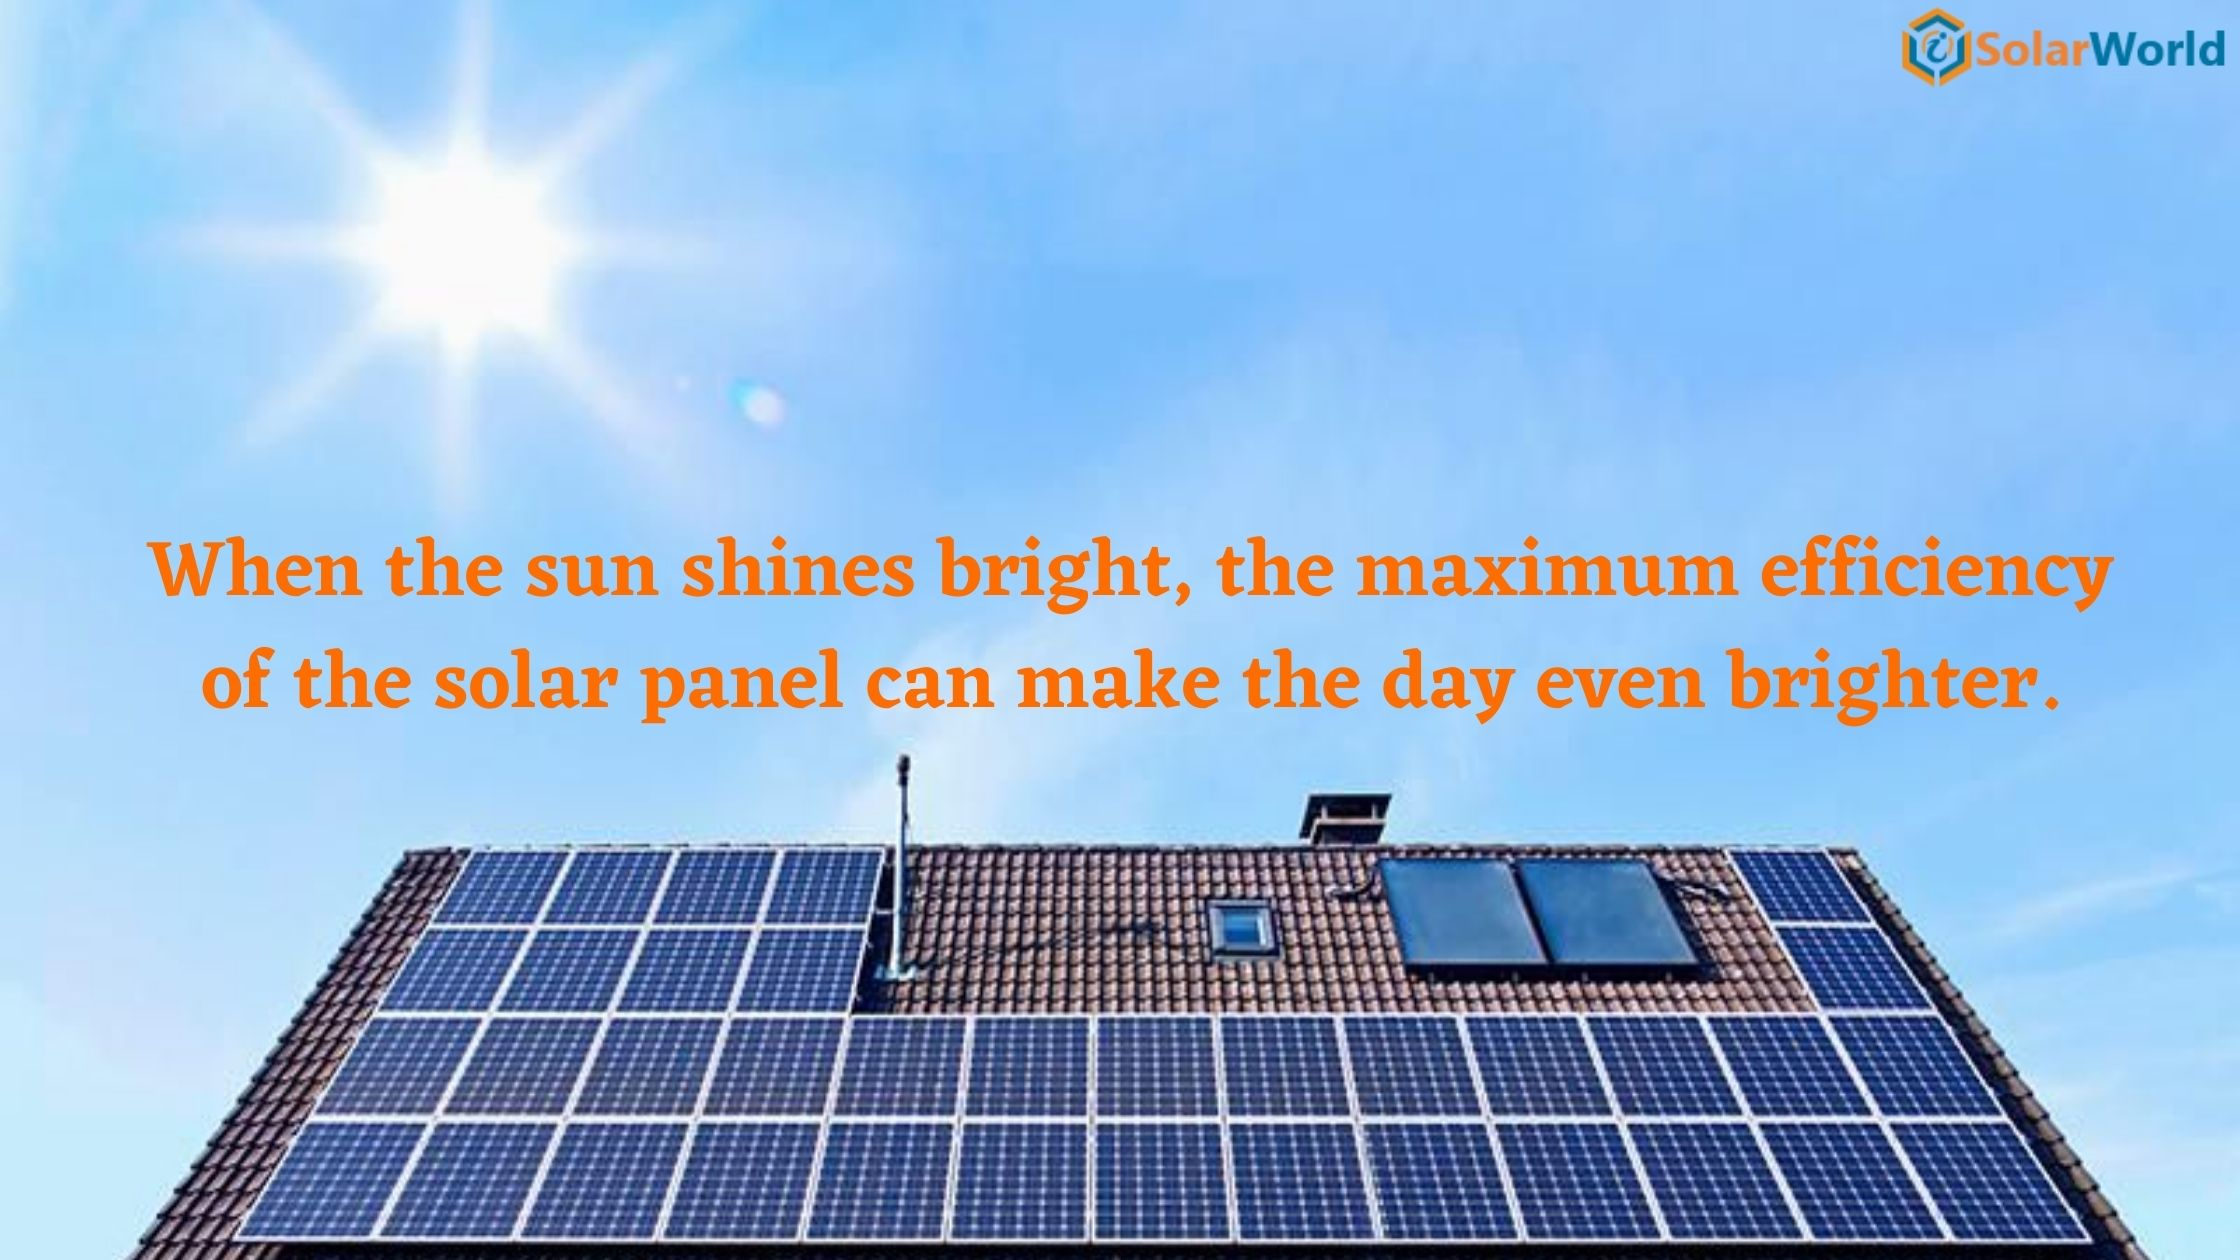 Detailed discussion about the various types of solar panels and their efficiency